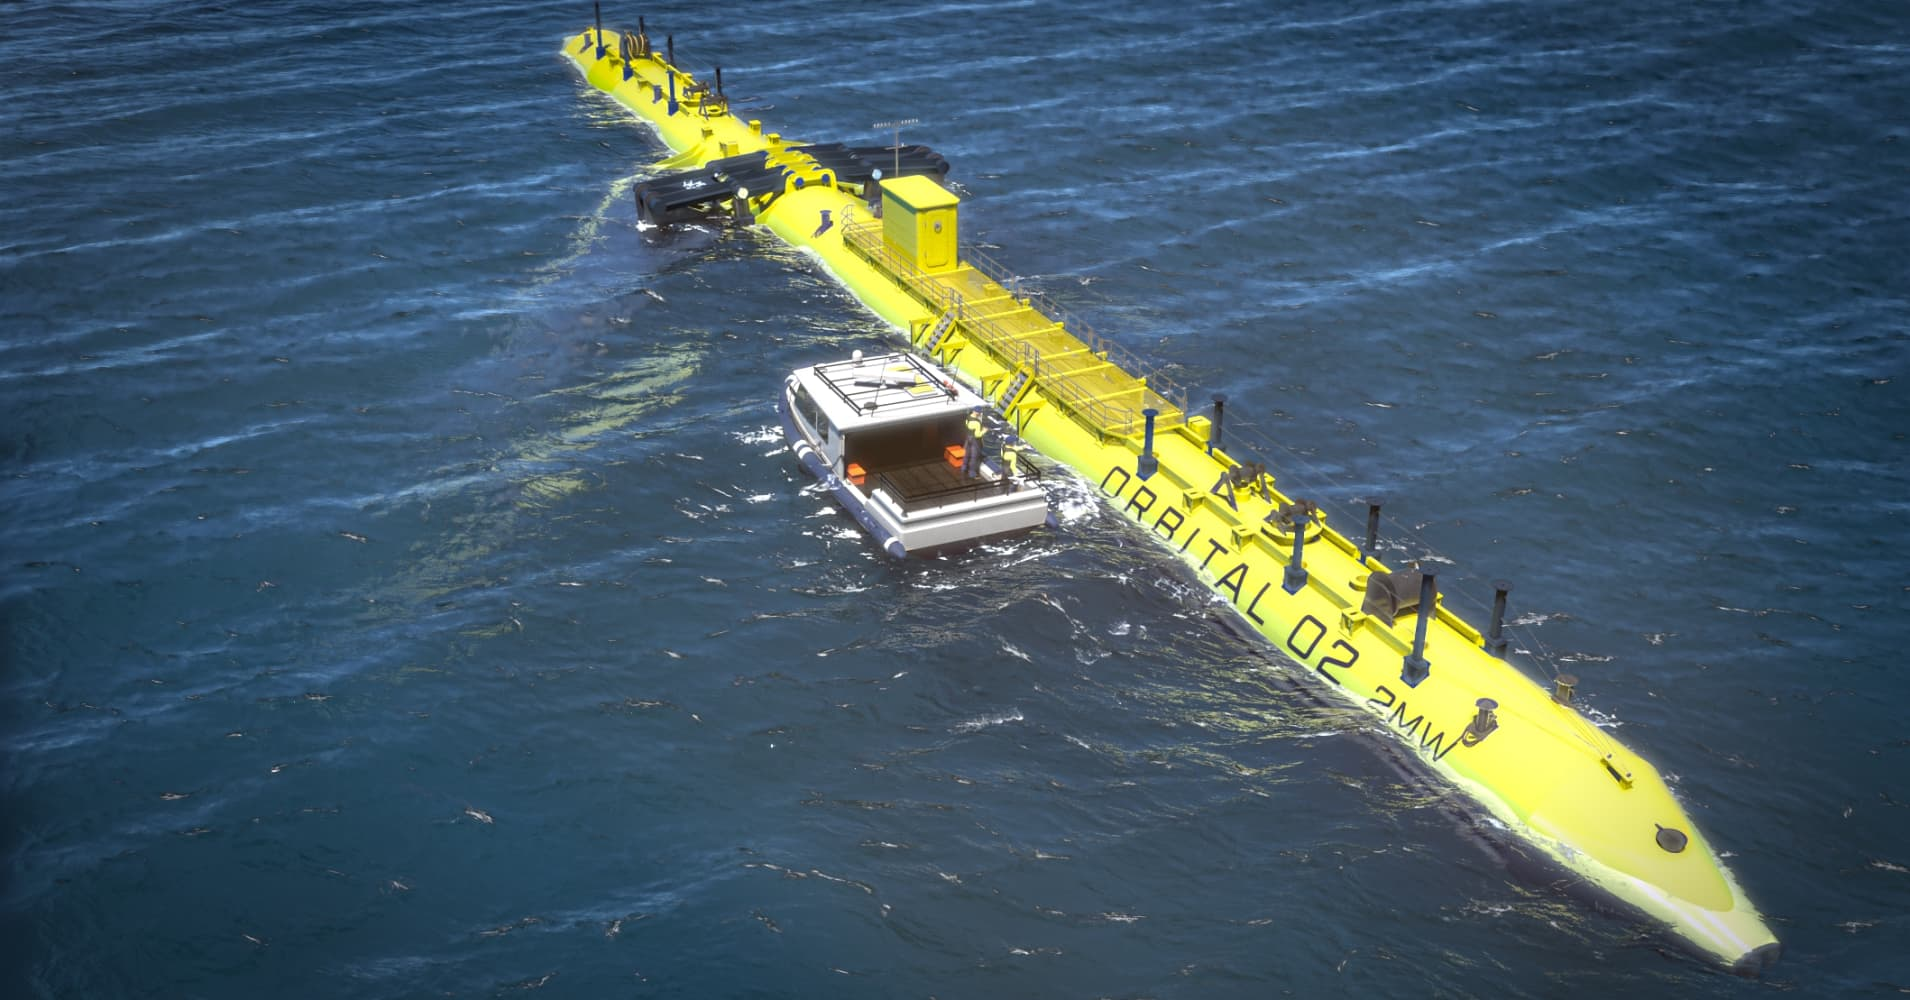 World's 'most powerful tidal generating turbine' set to be demonstrated in waters off Wales